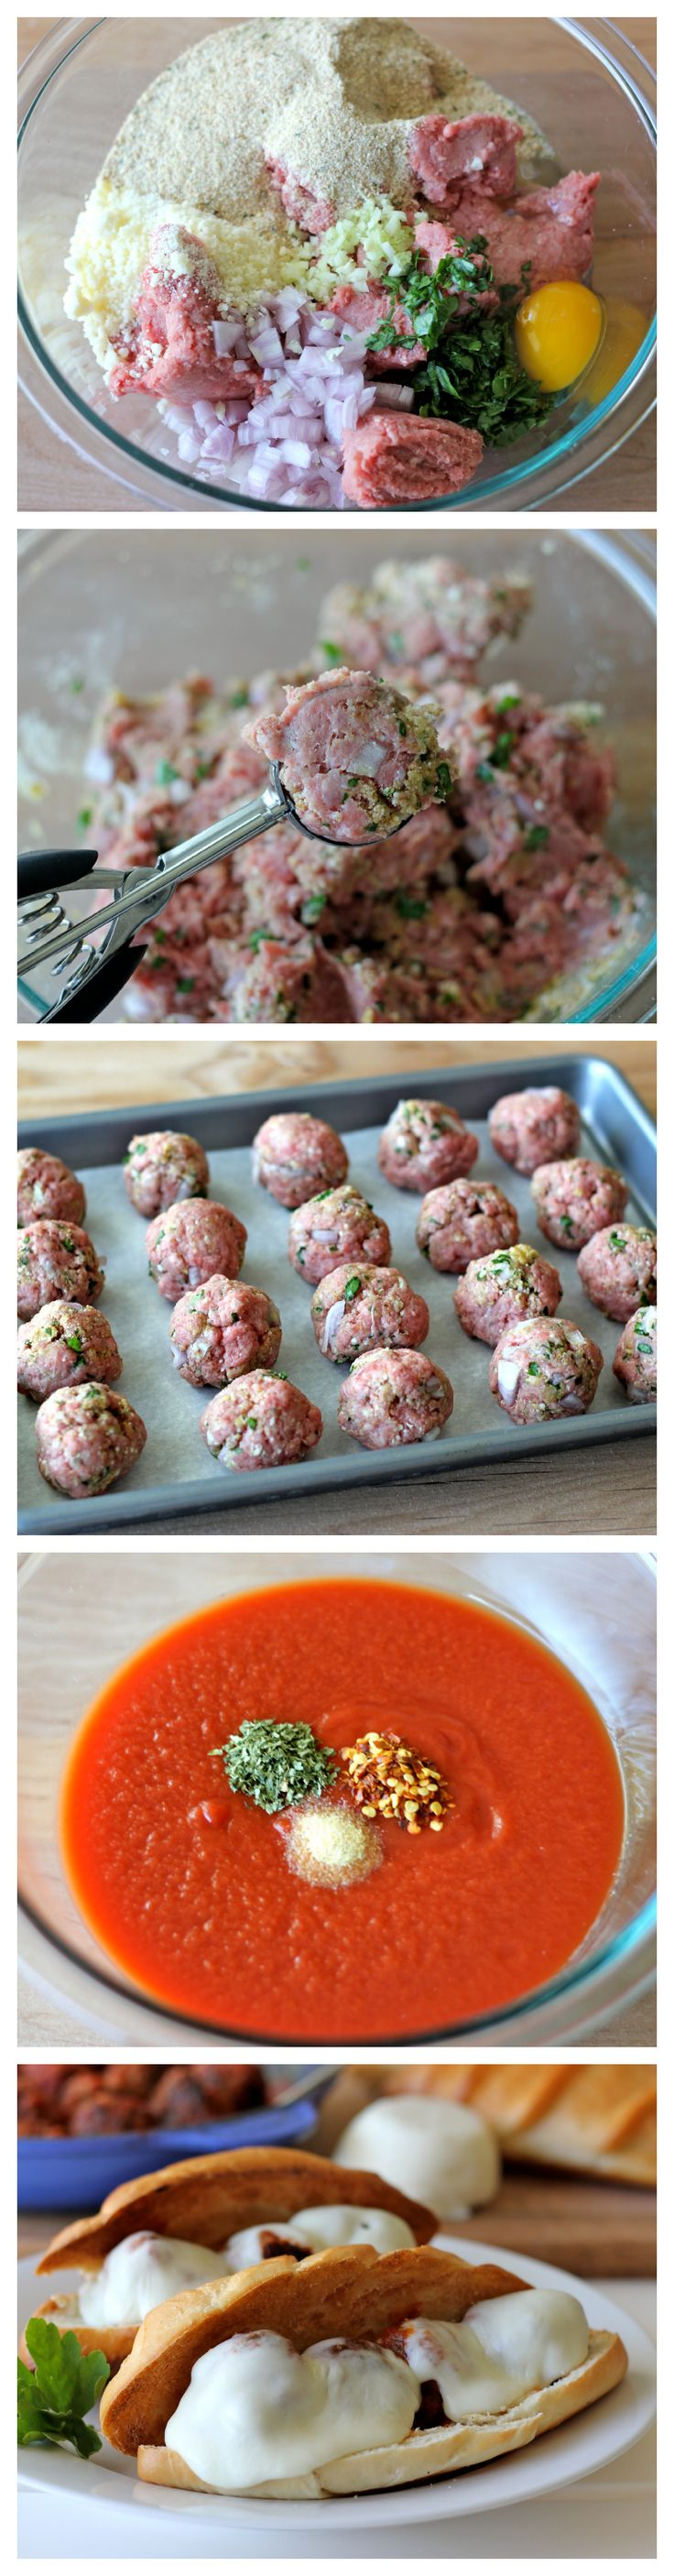 Italian Meatball Sandwiches – The best meatball sub that you can make right at home with an easy homemade marinara!